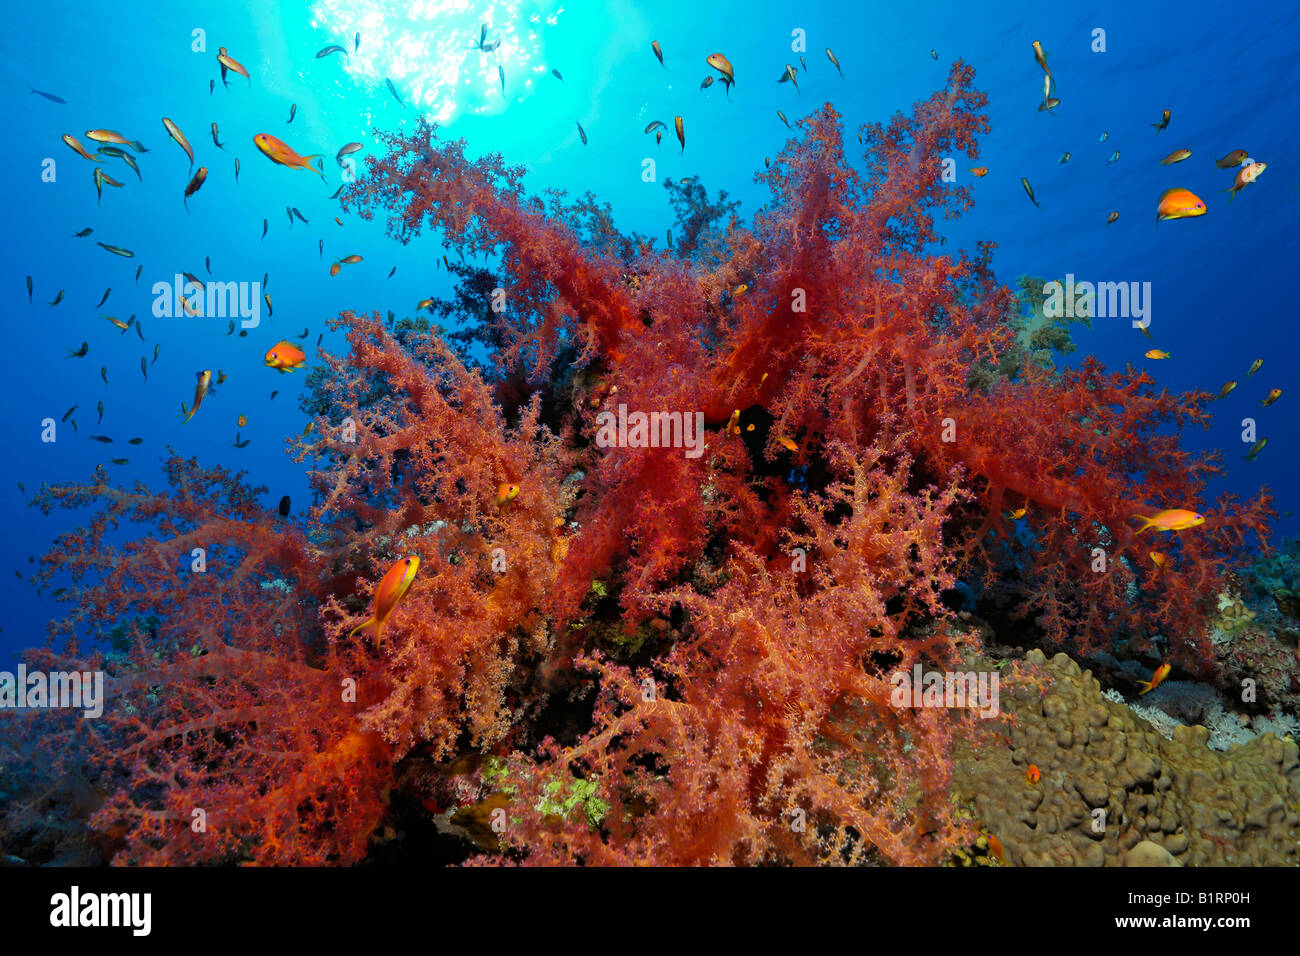 Red oceanic soft coral settled on a coral reef, Hurghada, Sharm el Sheik, Red Sea, Egypt, Africa - Stock Image